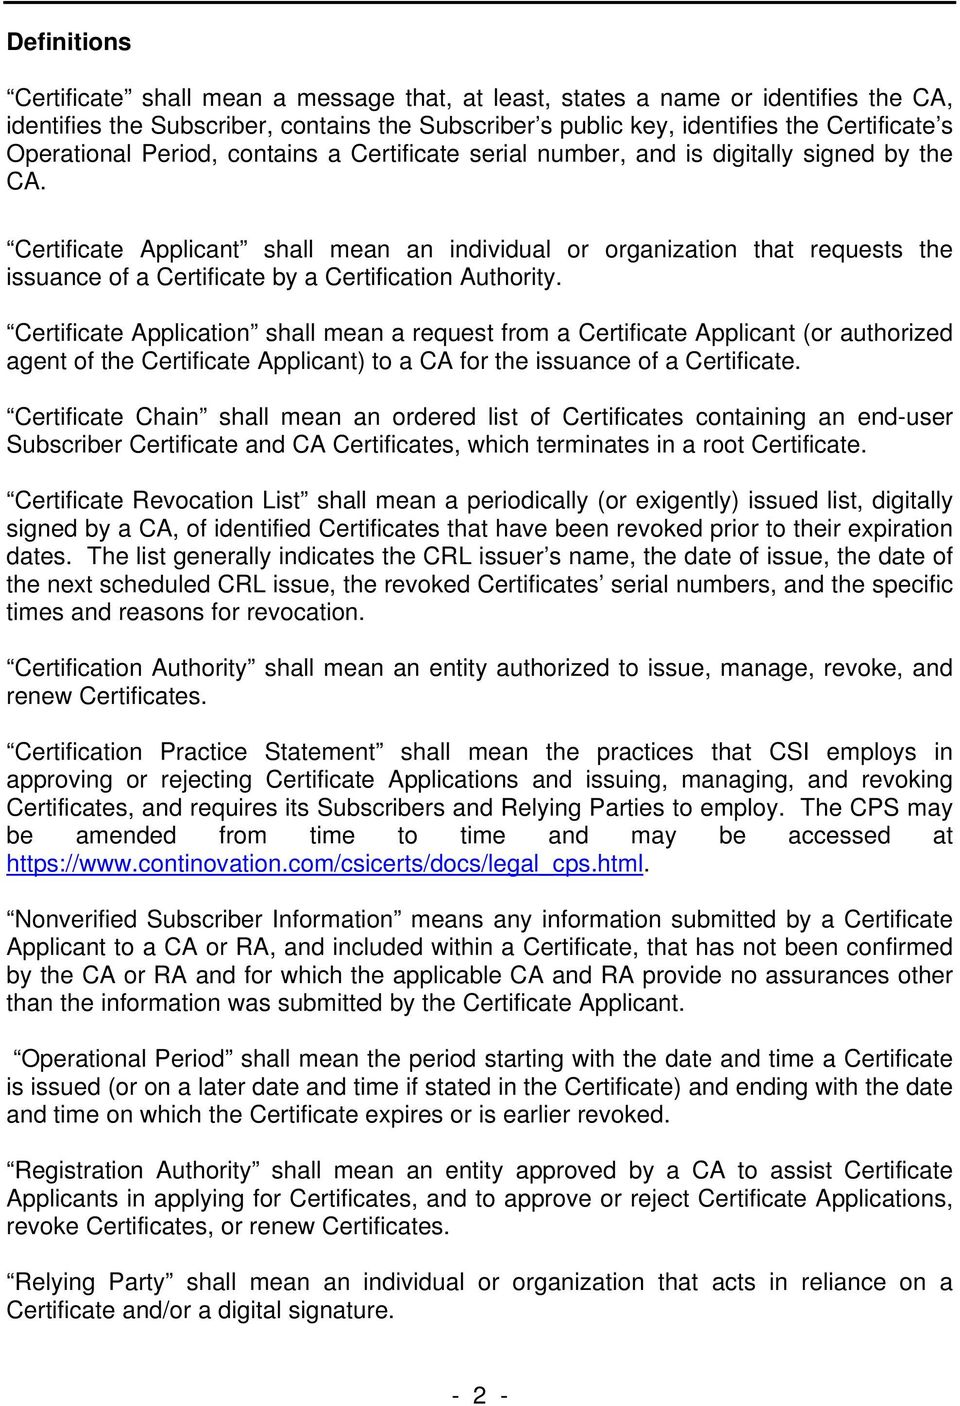 Certificate Applicant shall mean an individual or organization that requests the issuance of a Certificate by a Certification Authority.